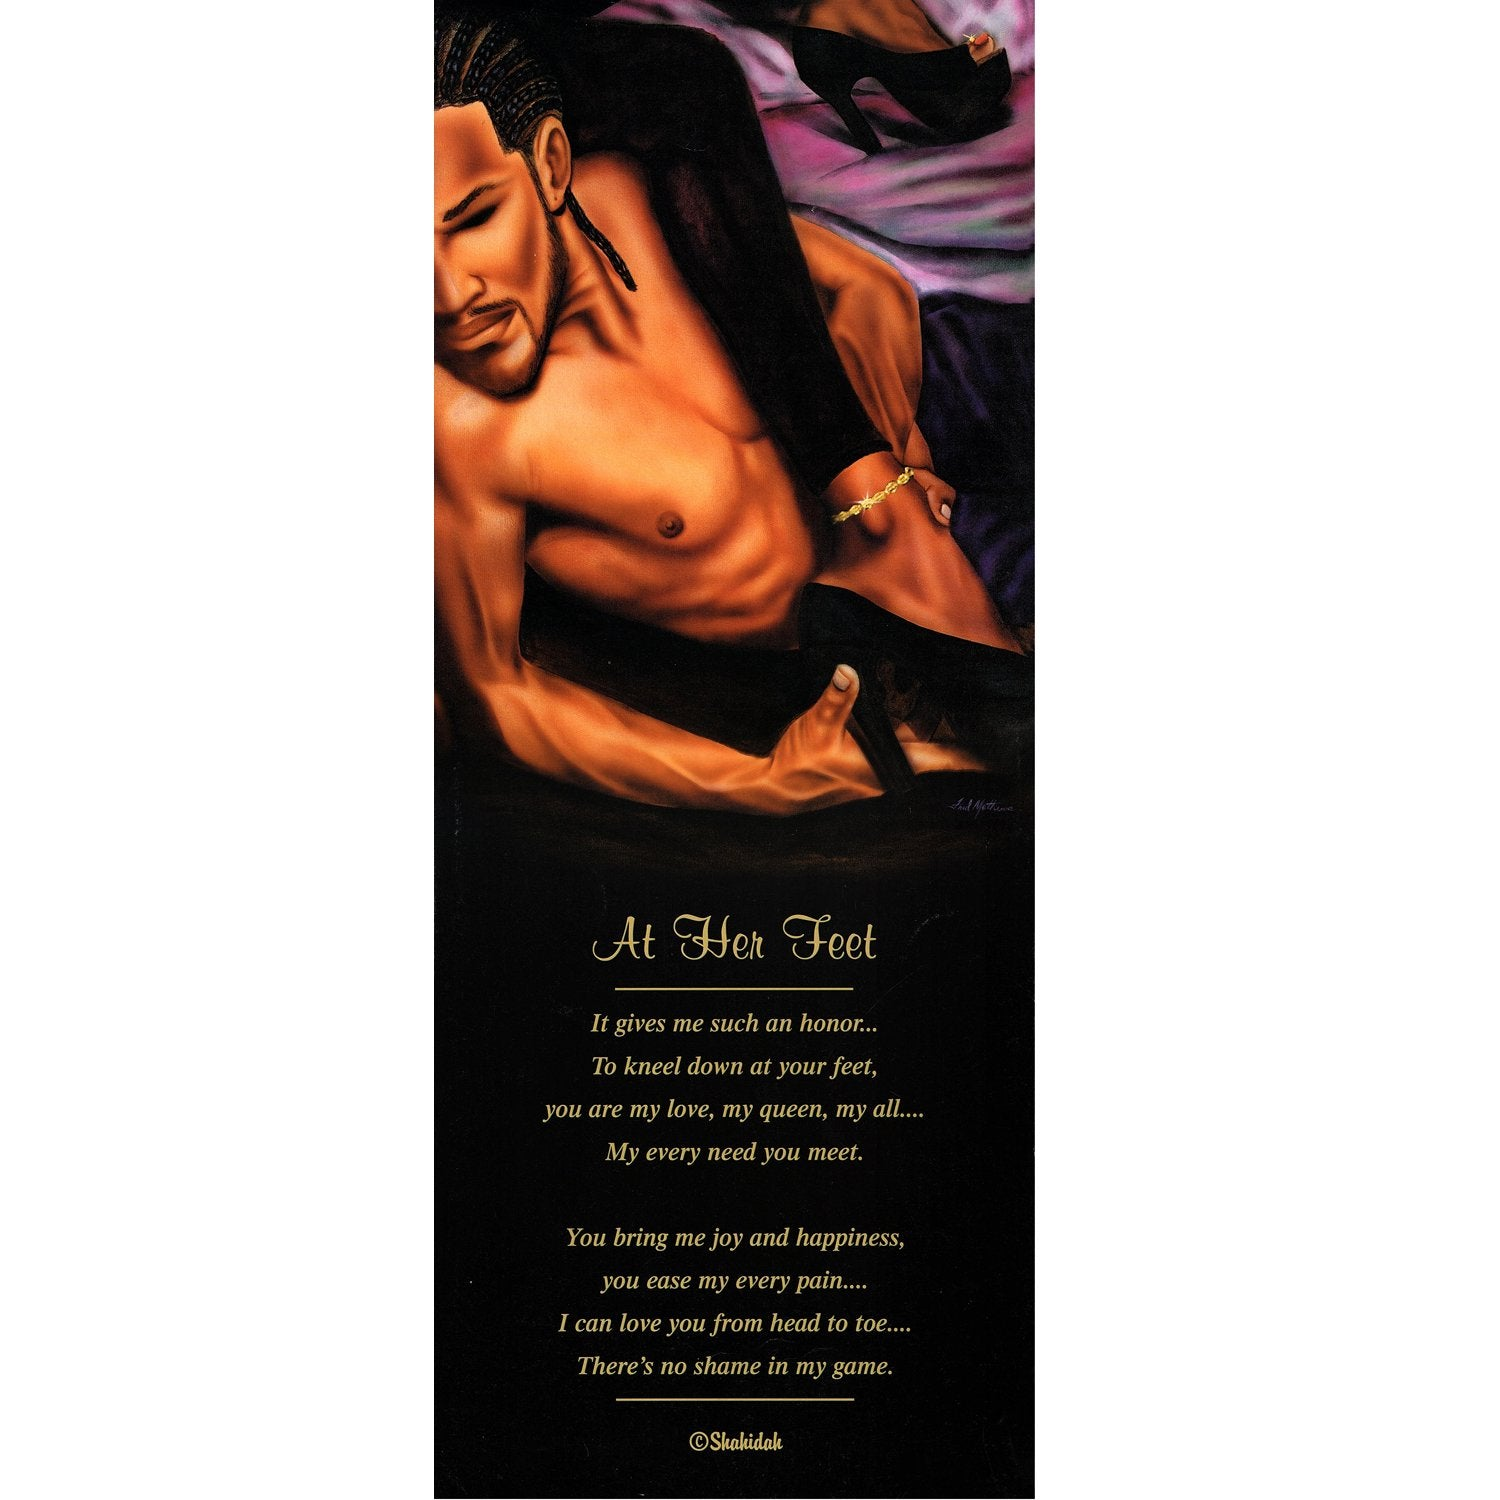 At Her Feet by Fred Mathews and Shahidah